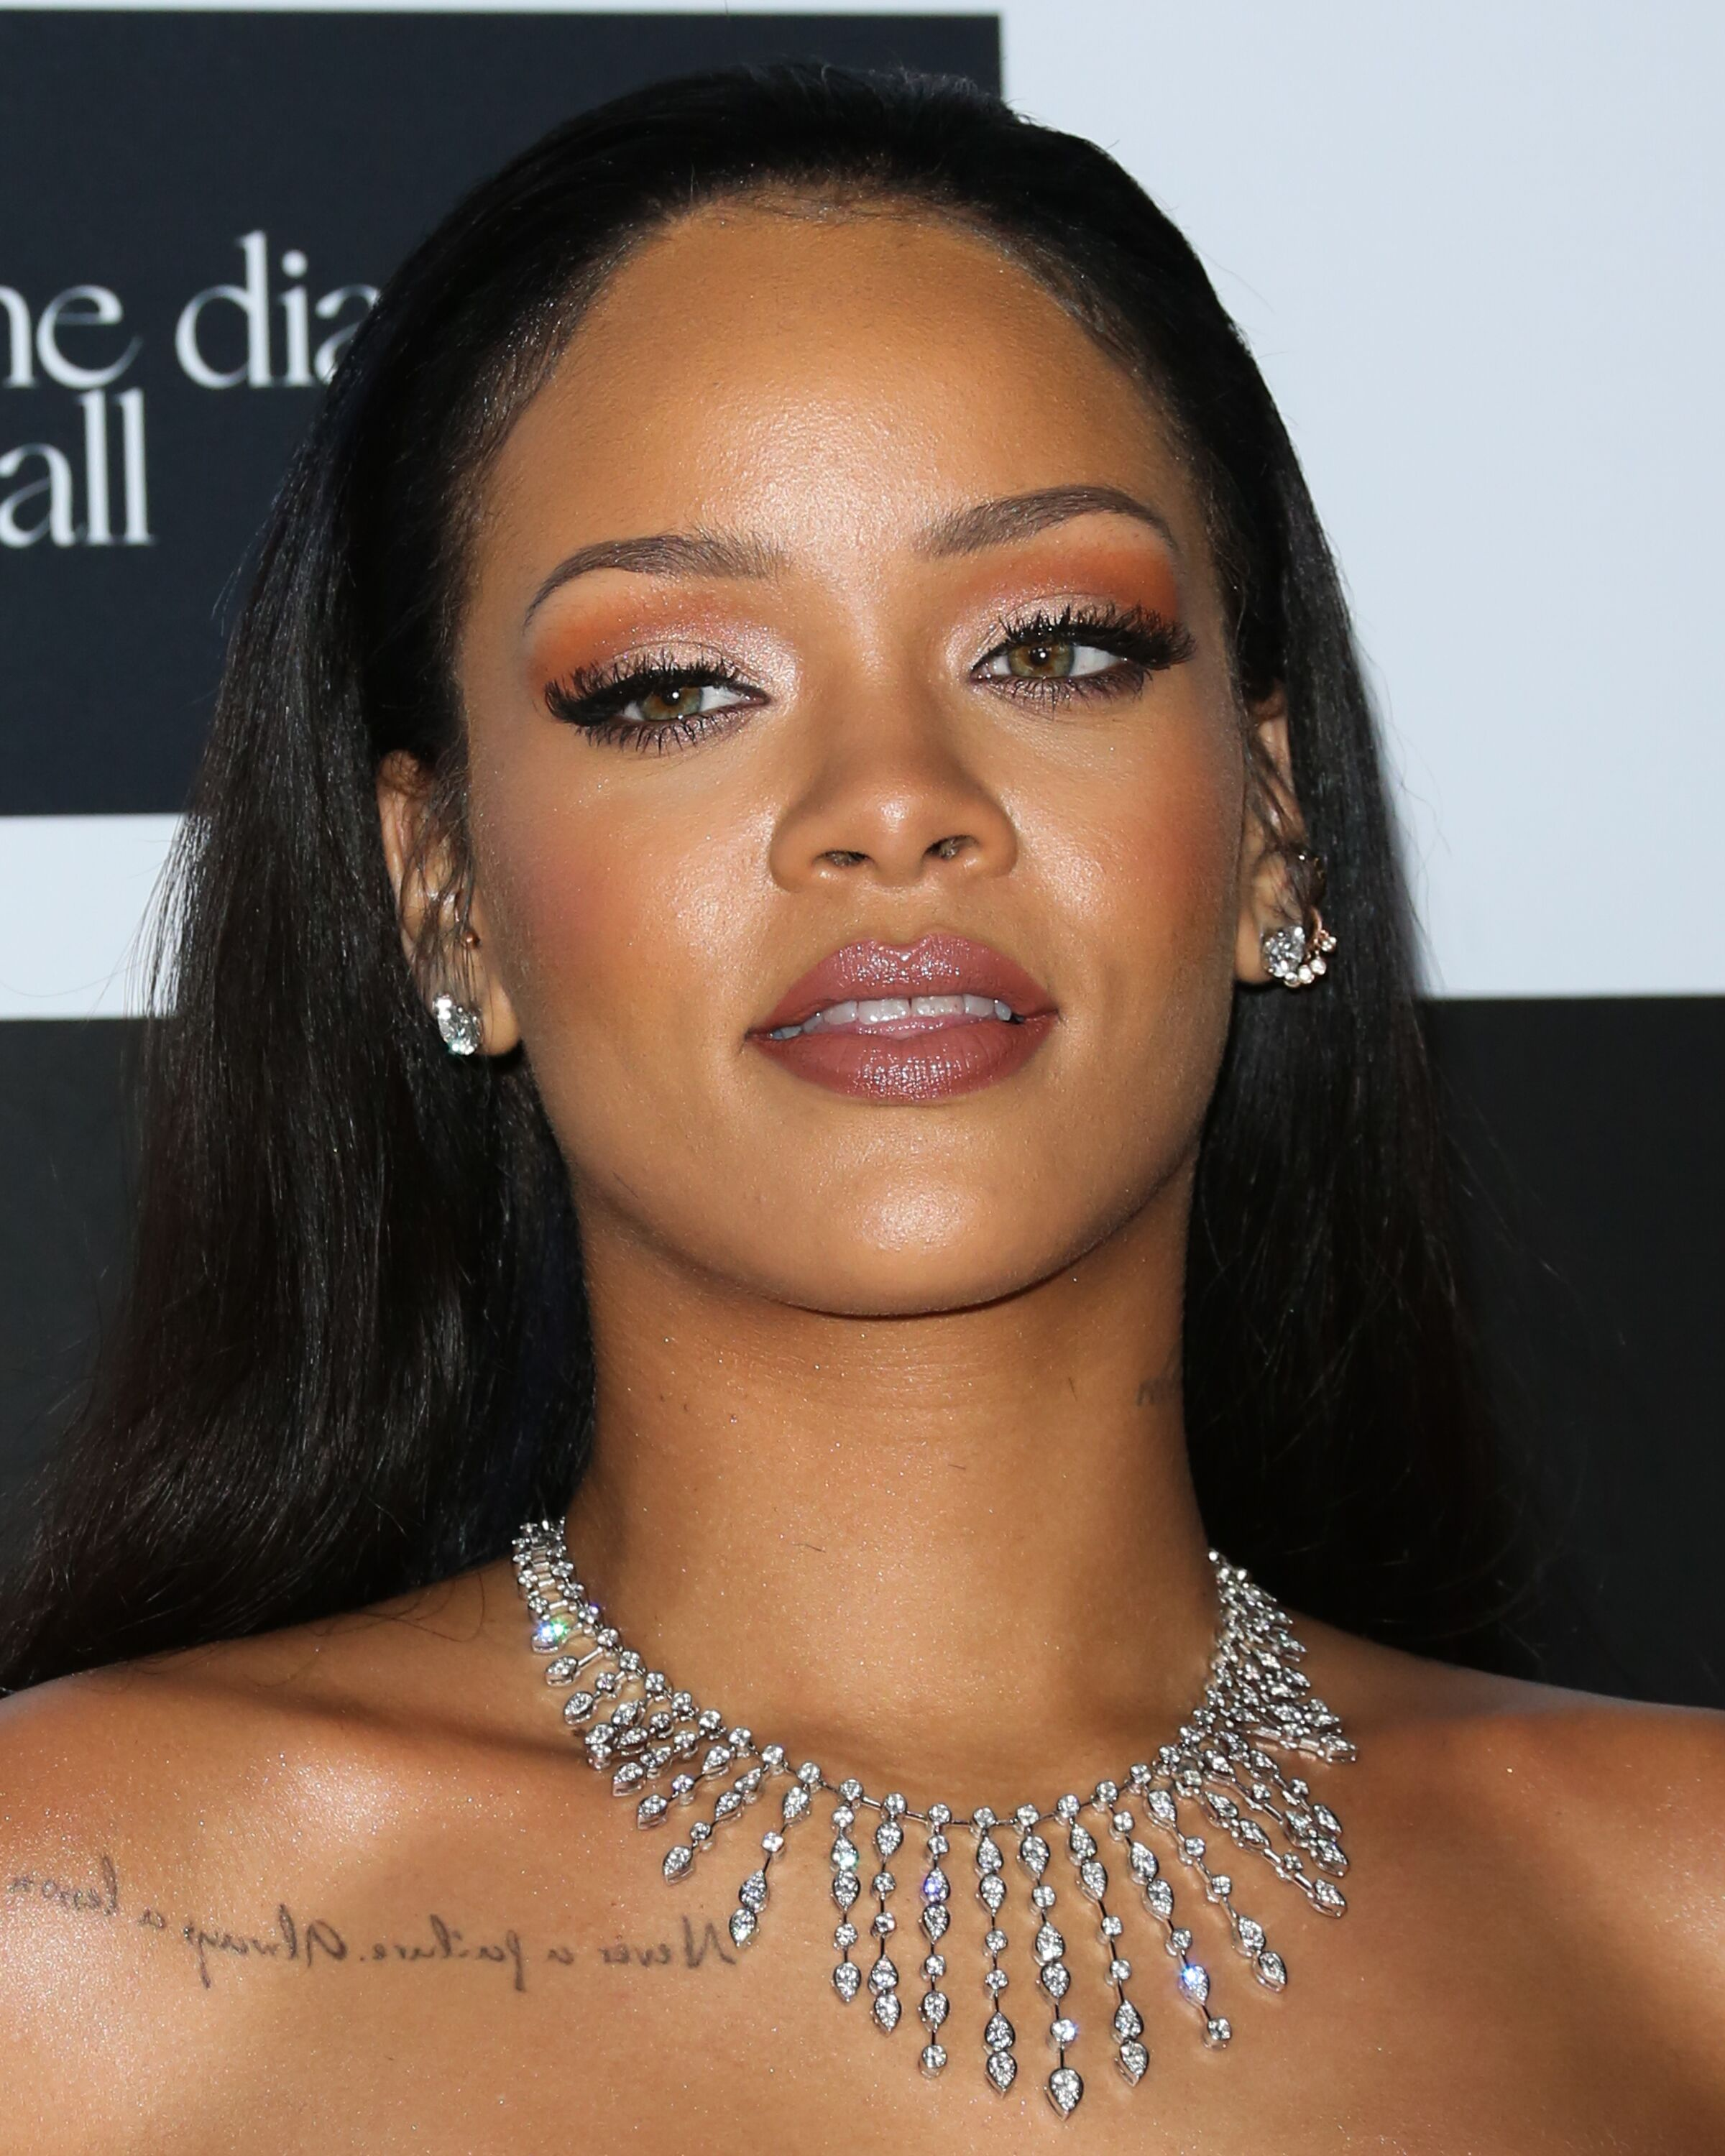 Singer Rihanna/ Source: Getty Images